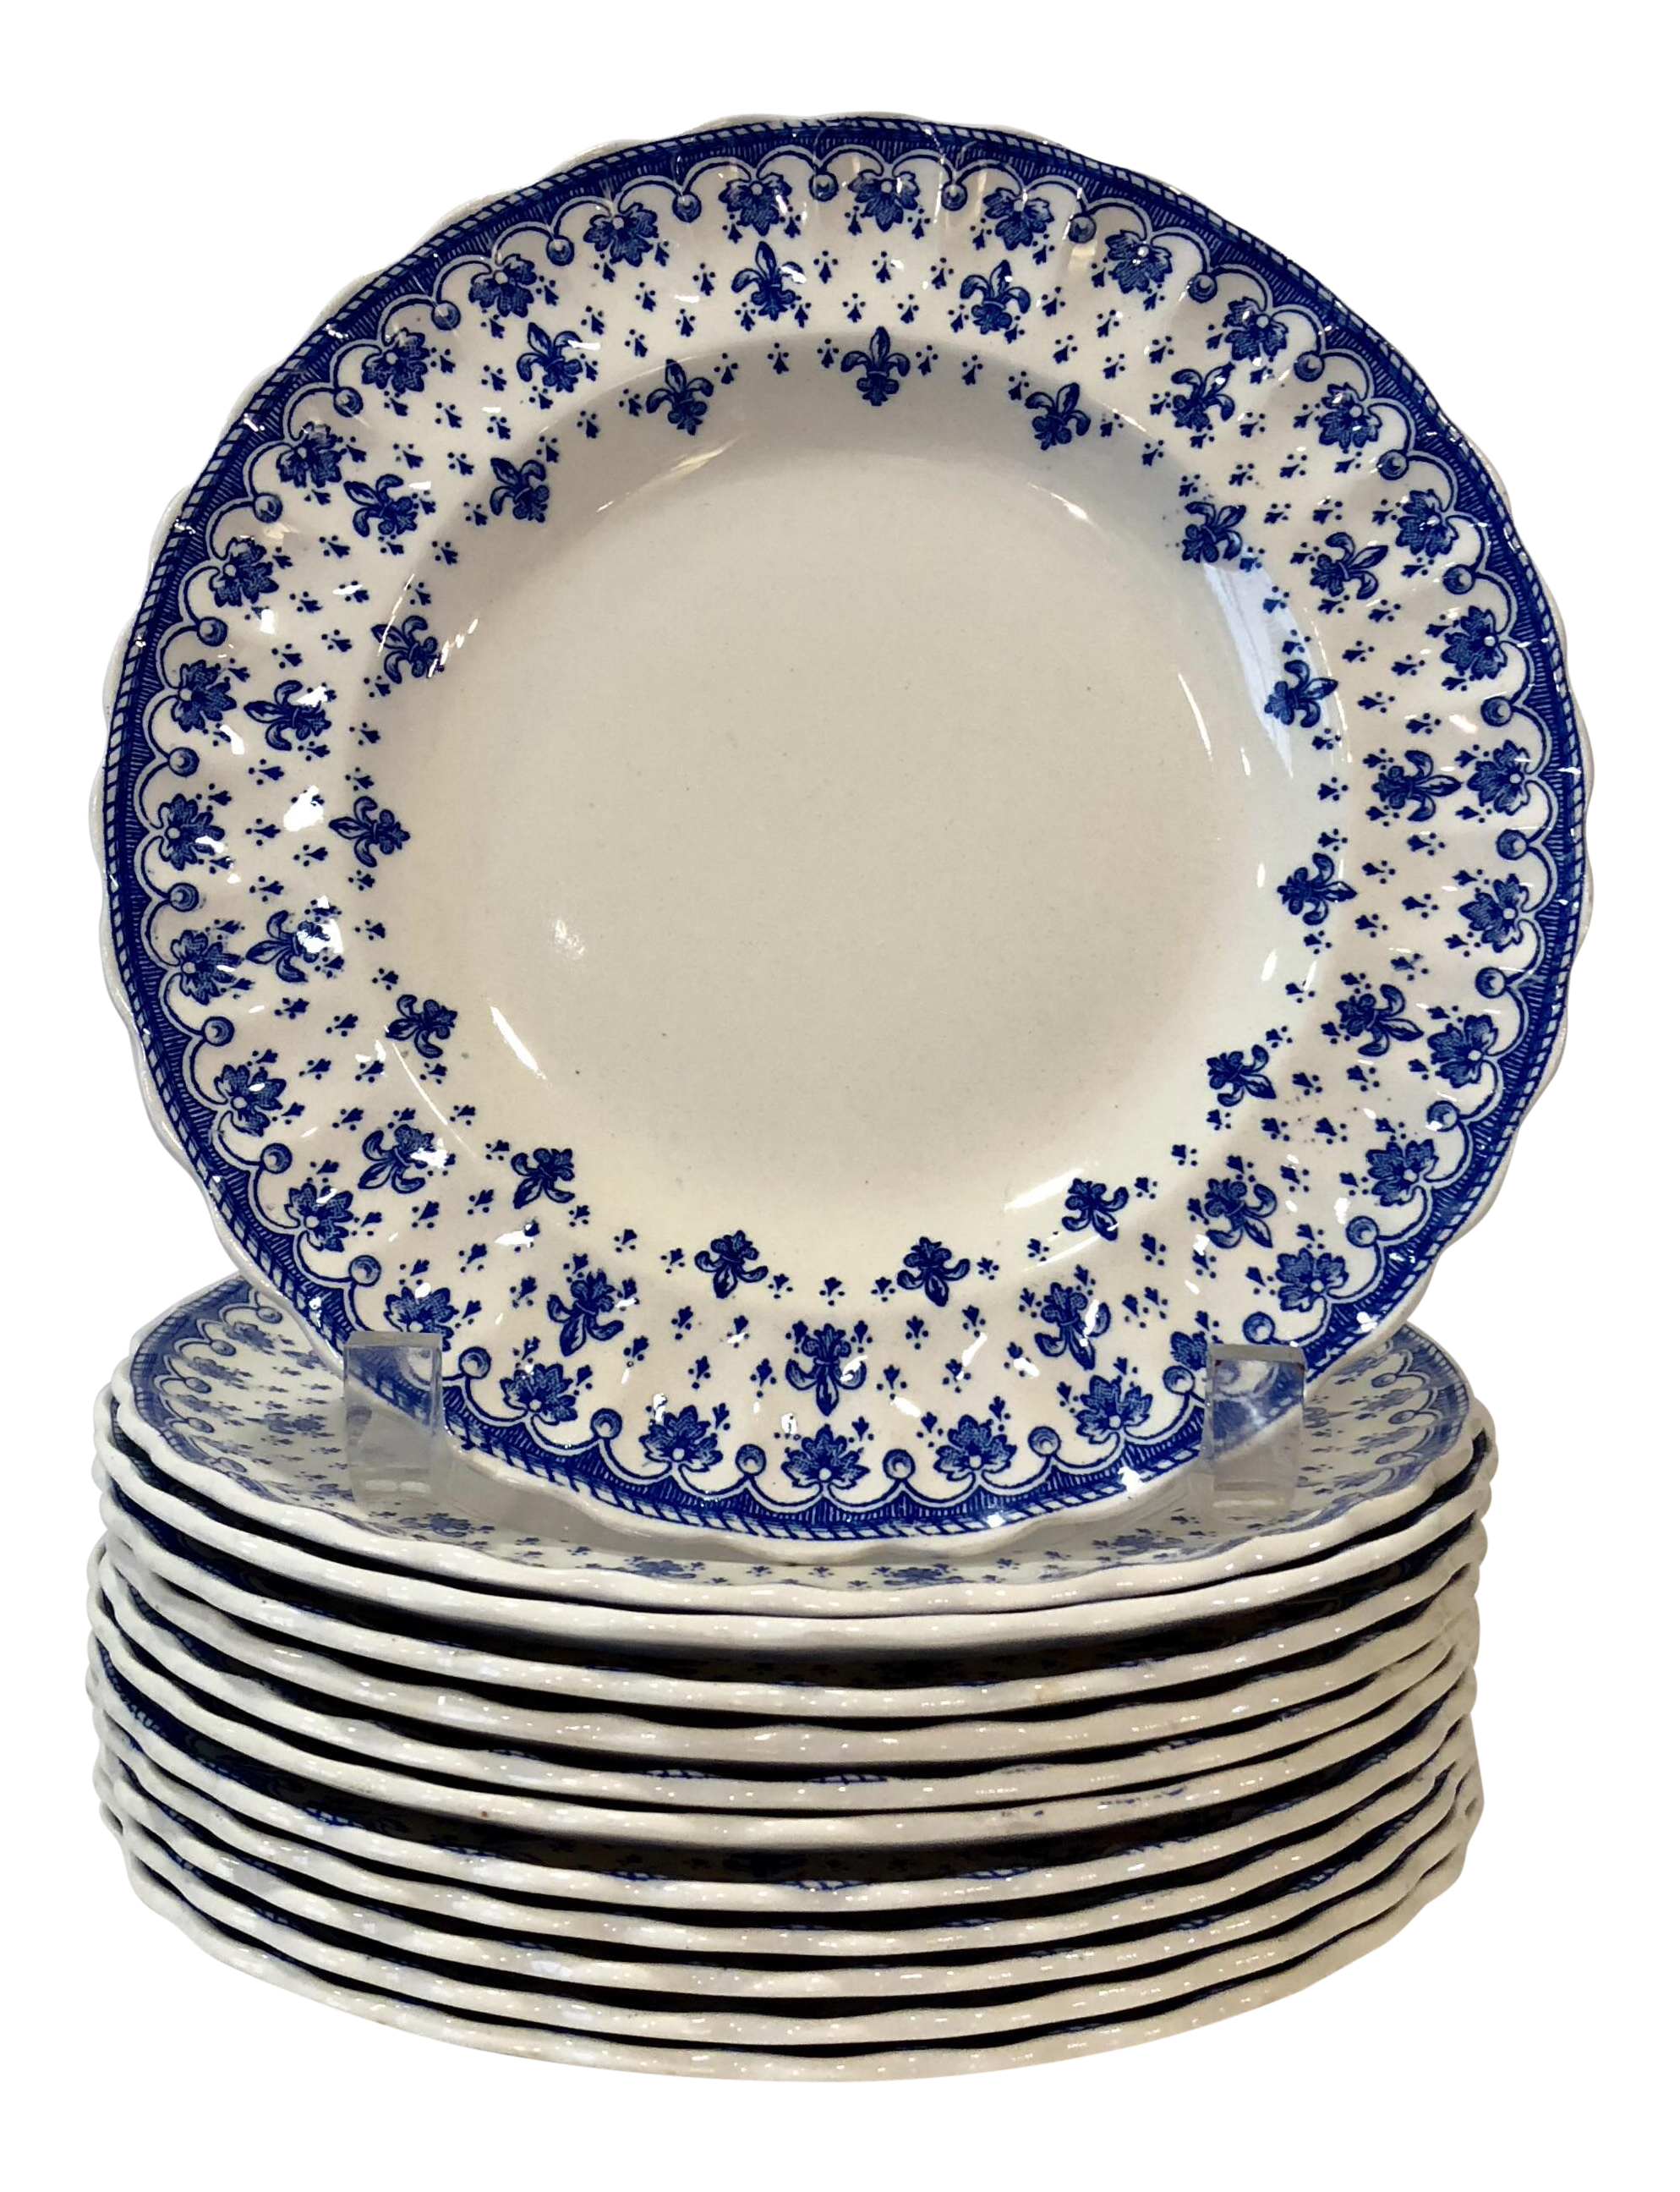 Spode Fleur-De-Lis Dessert Plates - Set of 12  sc 1 st  Chairish & Gently Used Spode Decor | Up to 50% off at Chairish